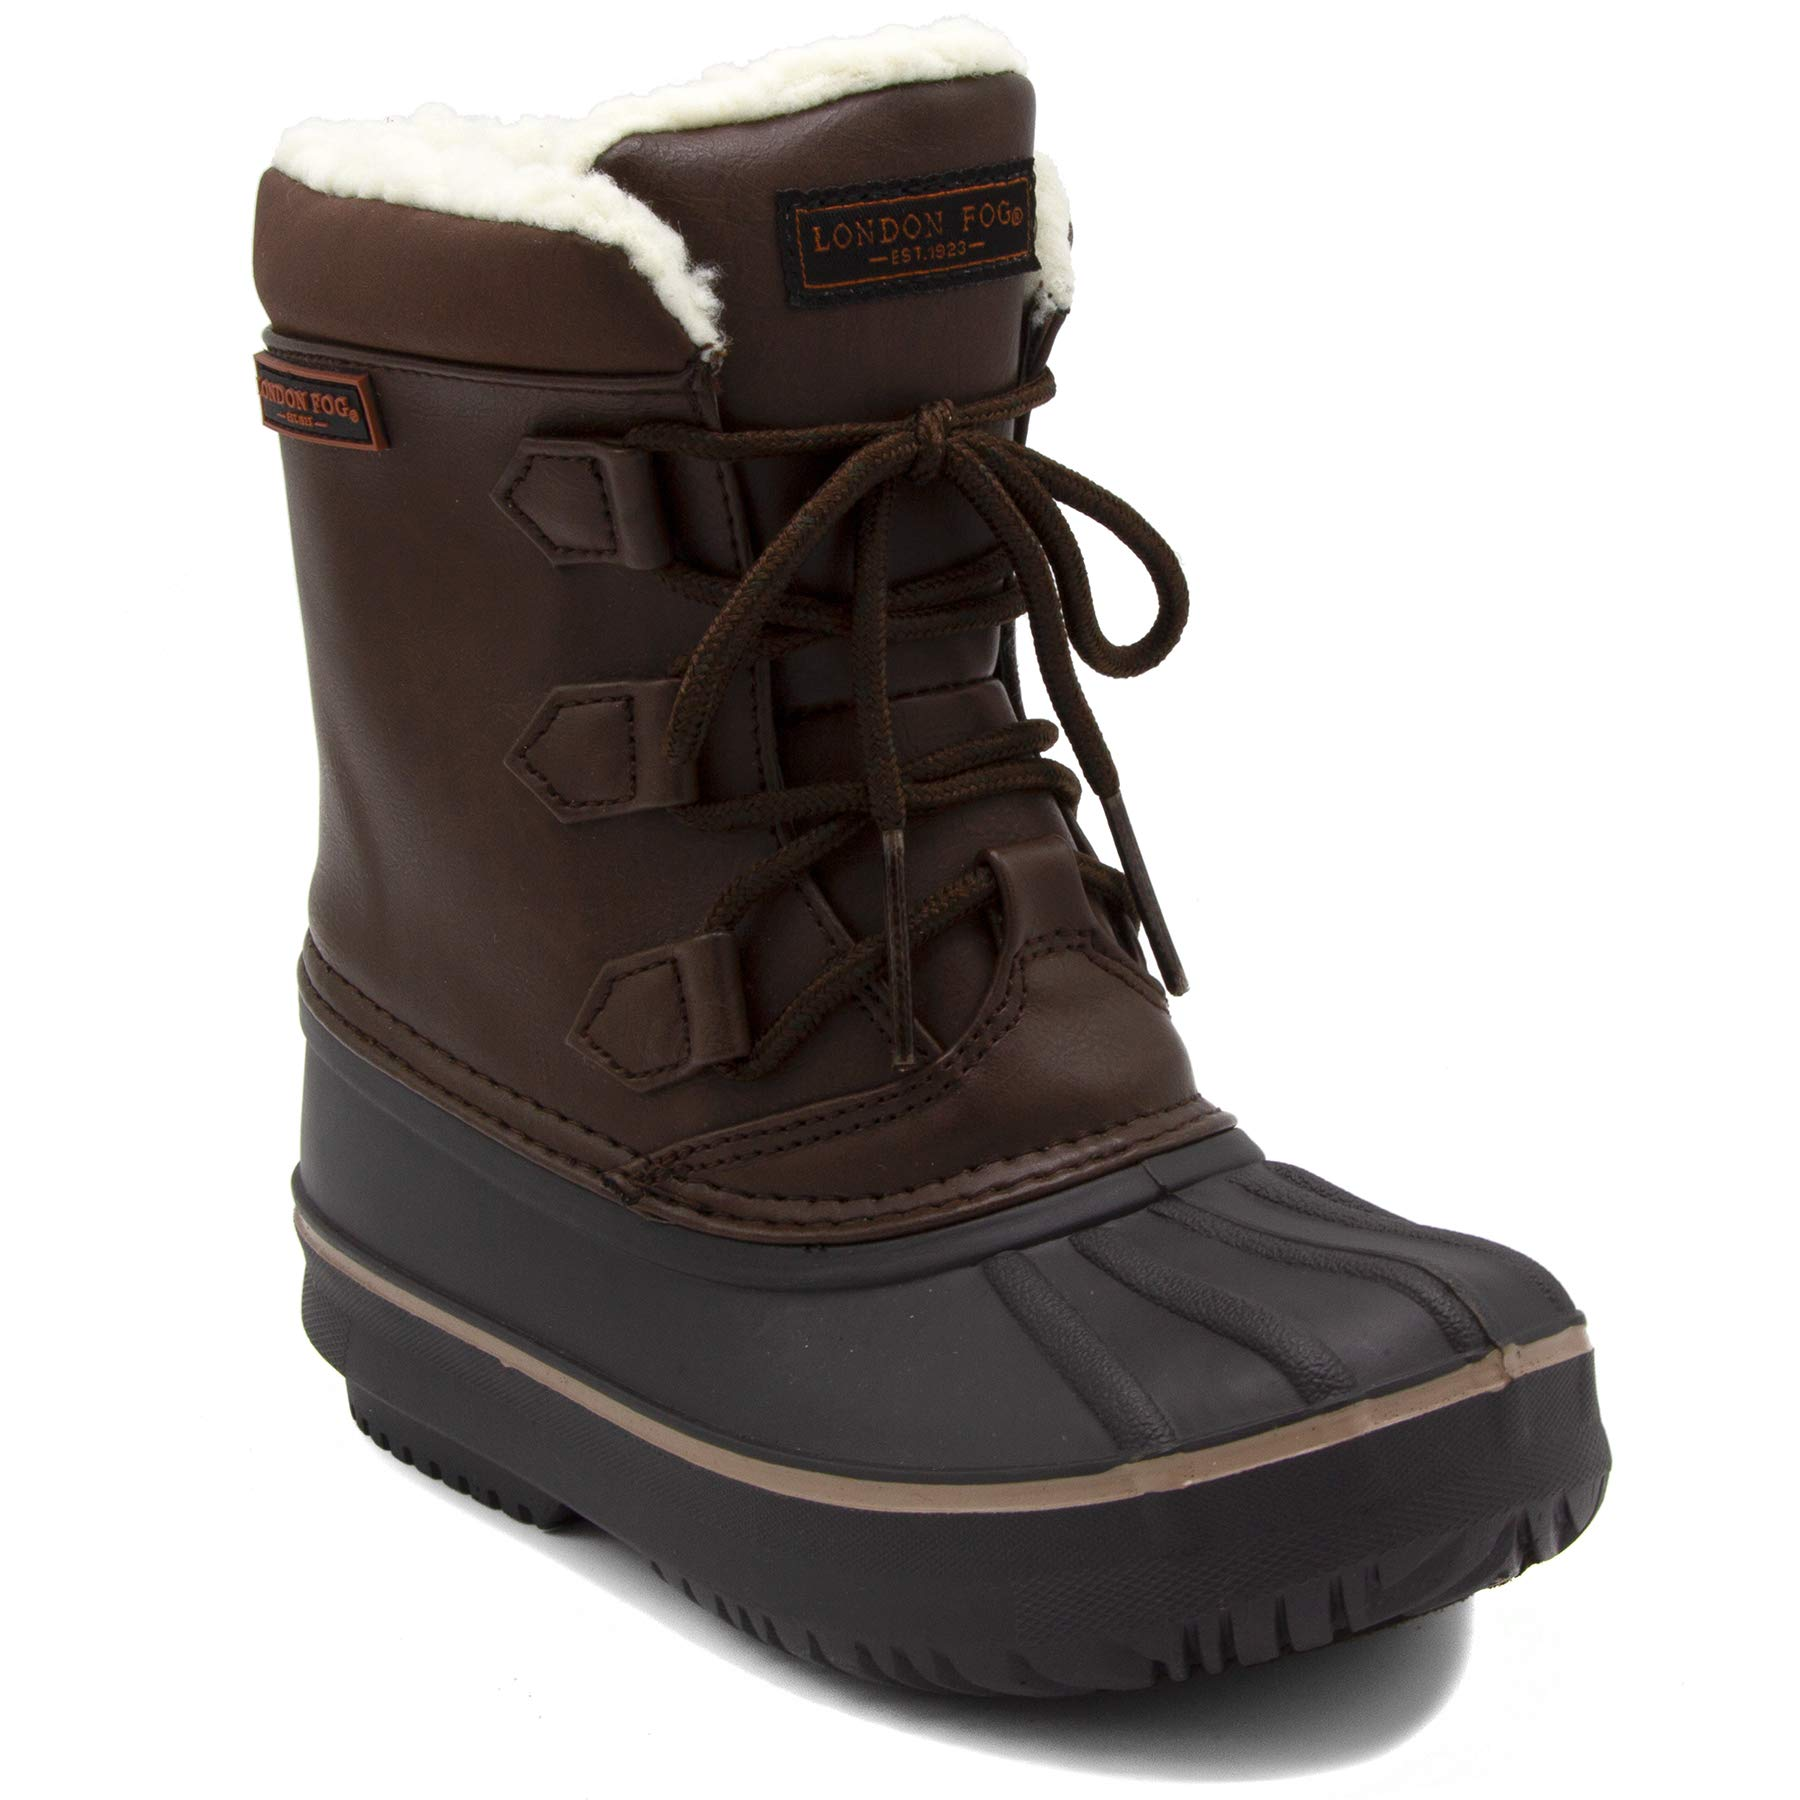 London Fog Boys Cheshire Cold Weather Snow Boot Brown 4